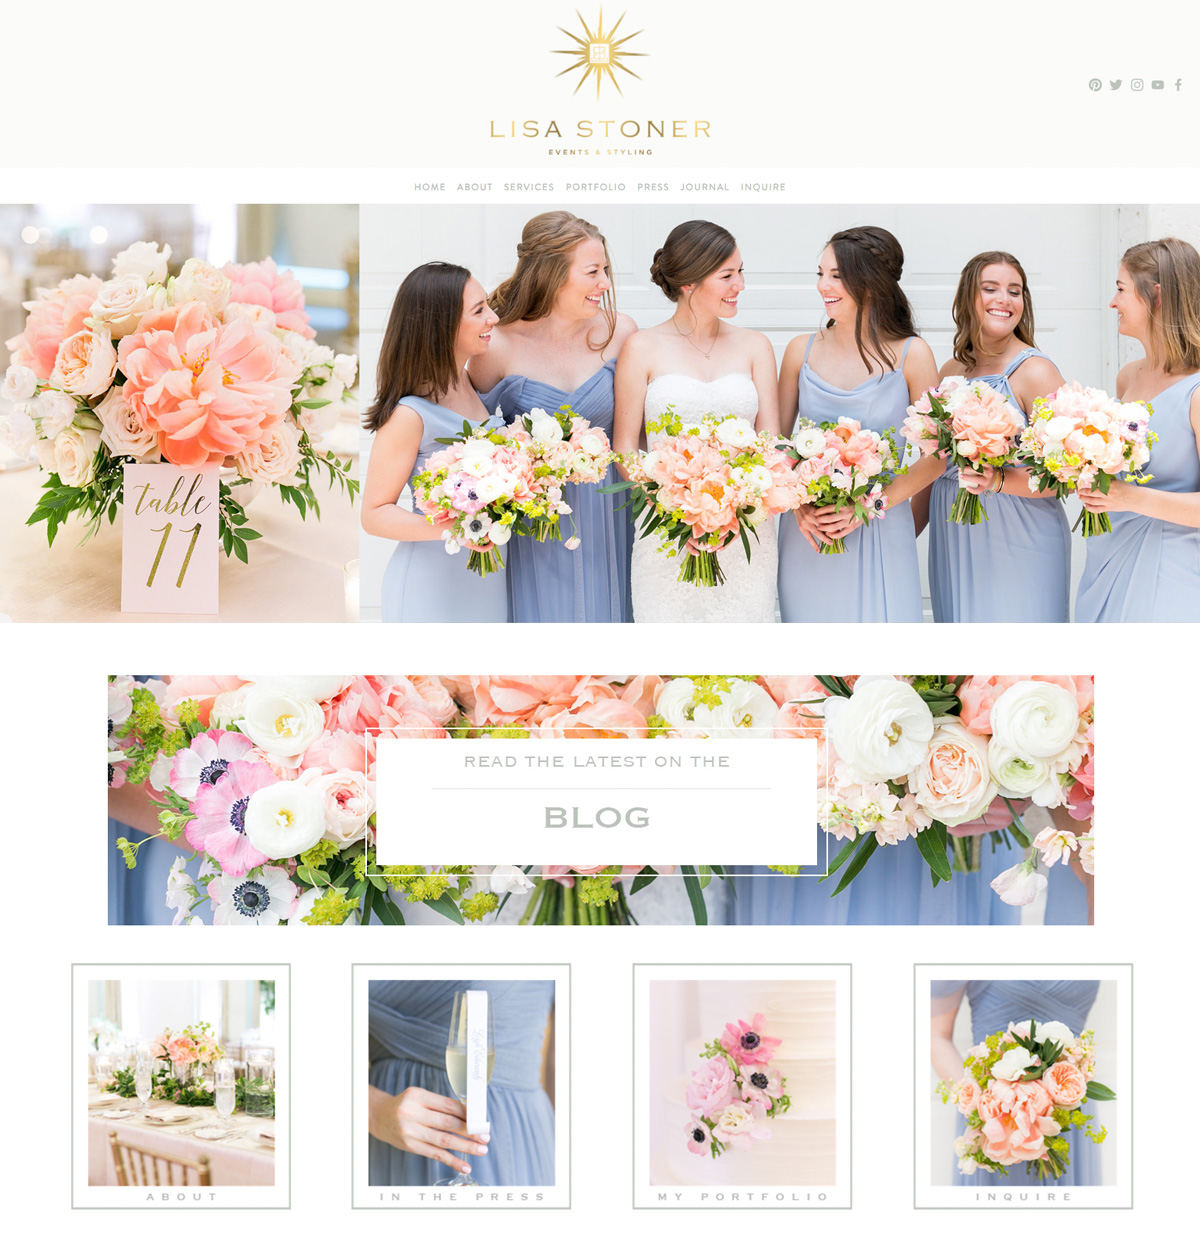 theeditorstouch.com | Lisa Stoner Events Website Designer | The Editor's Touch